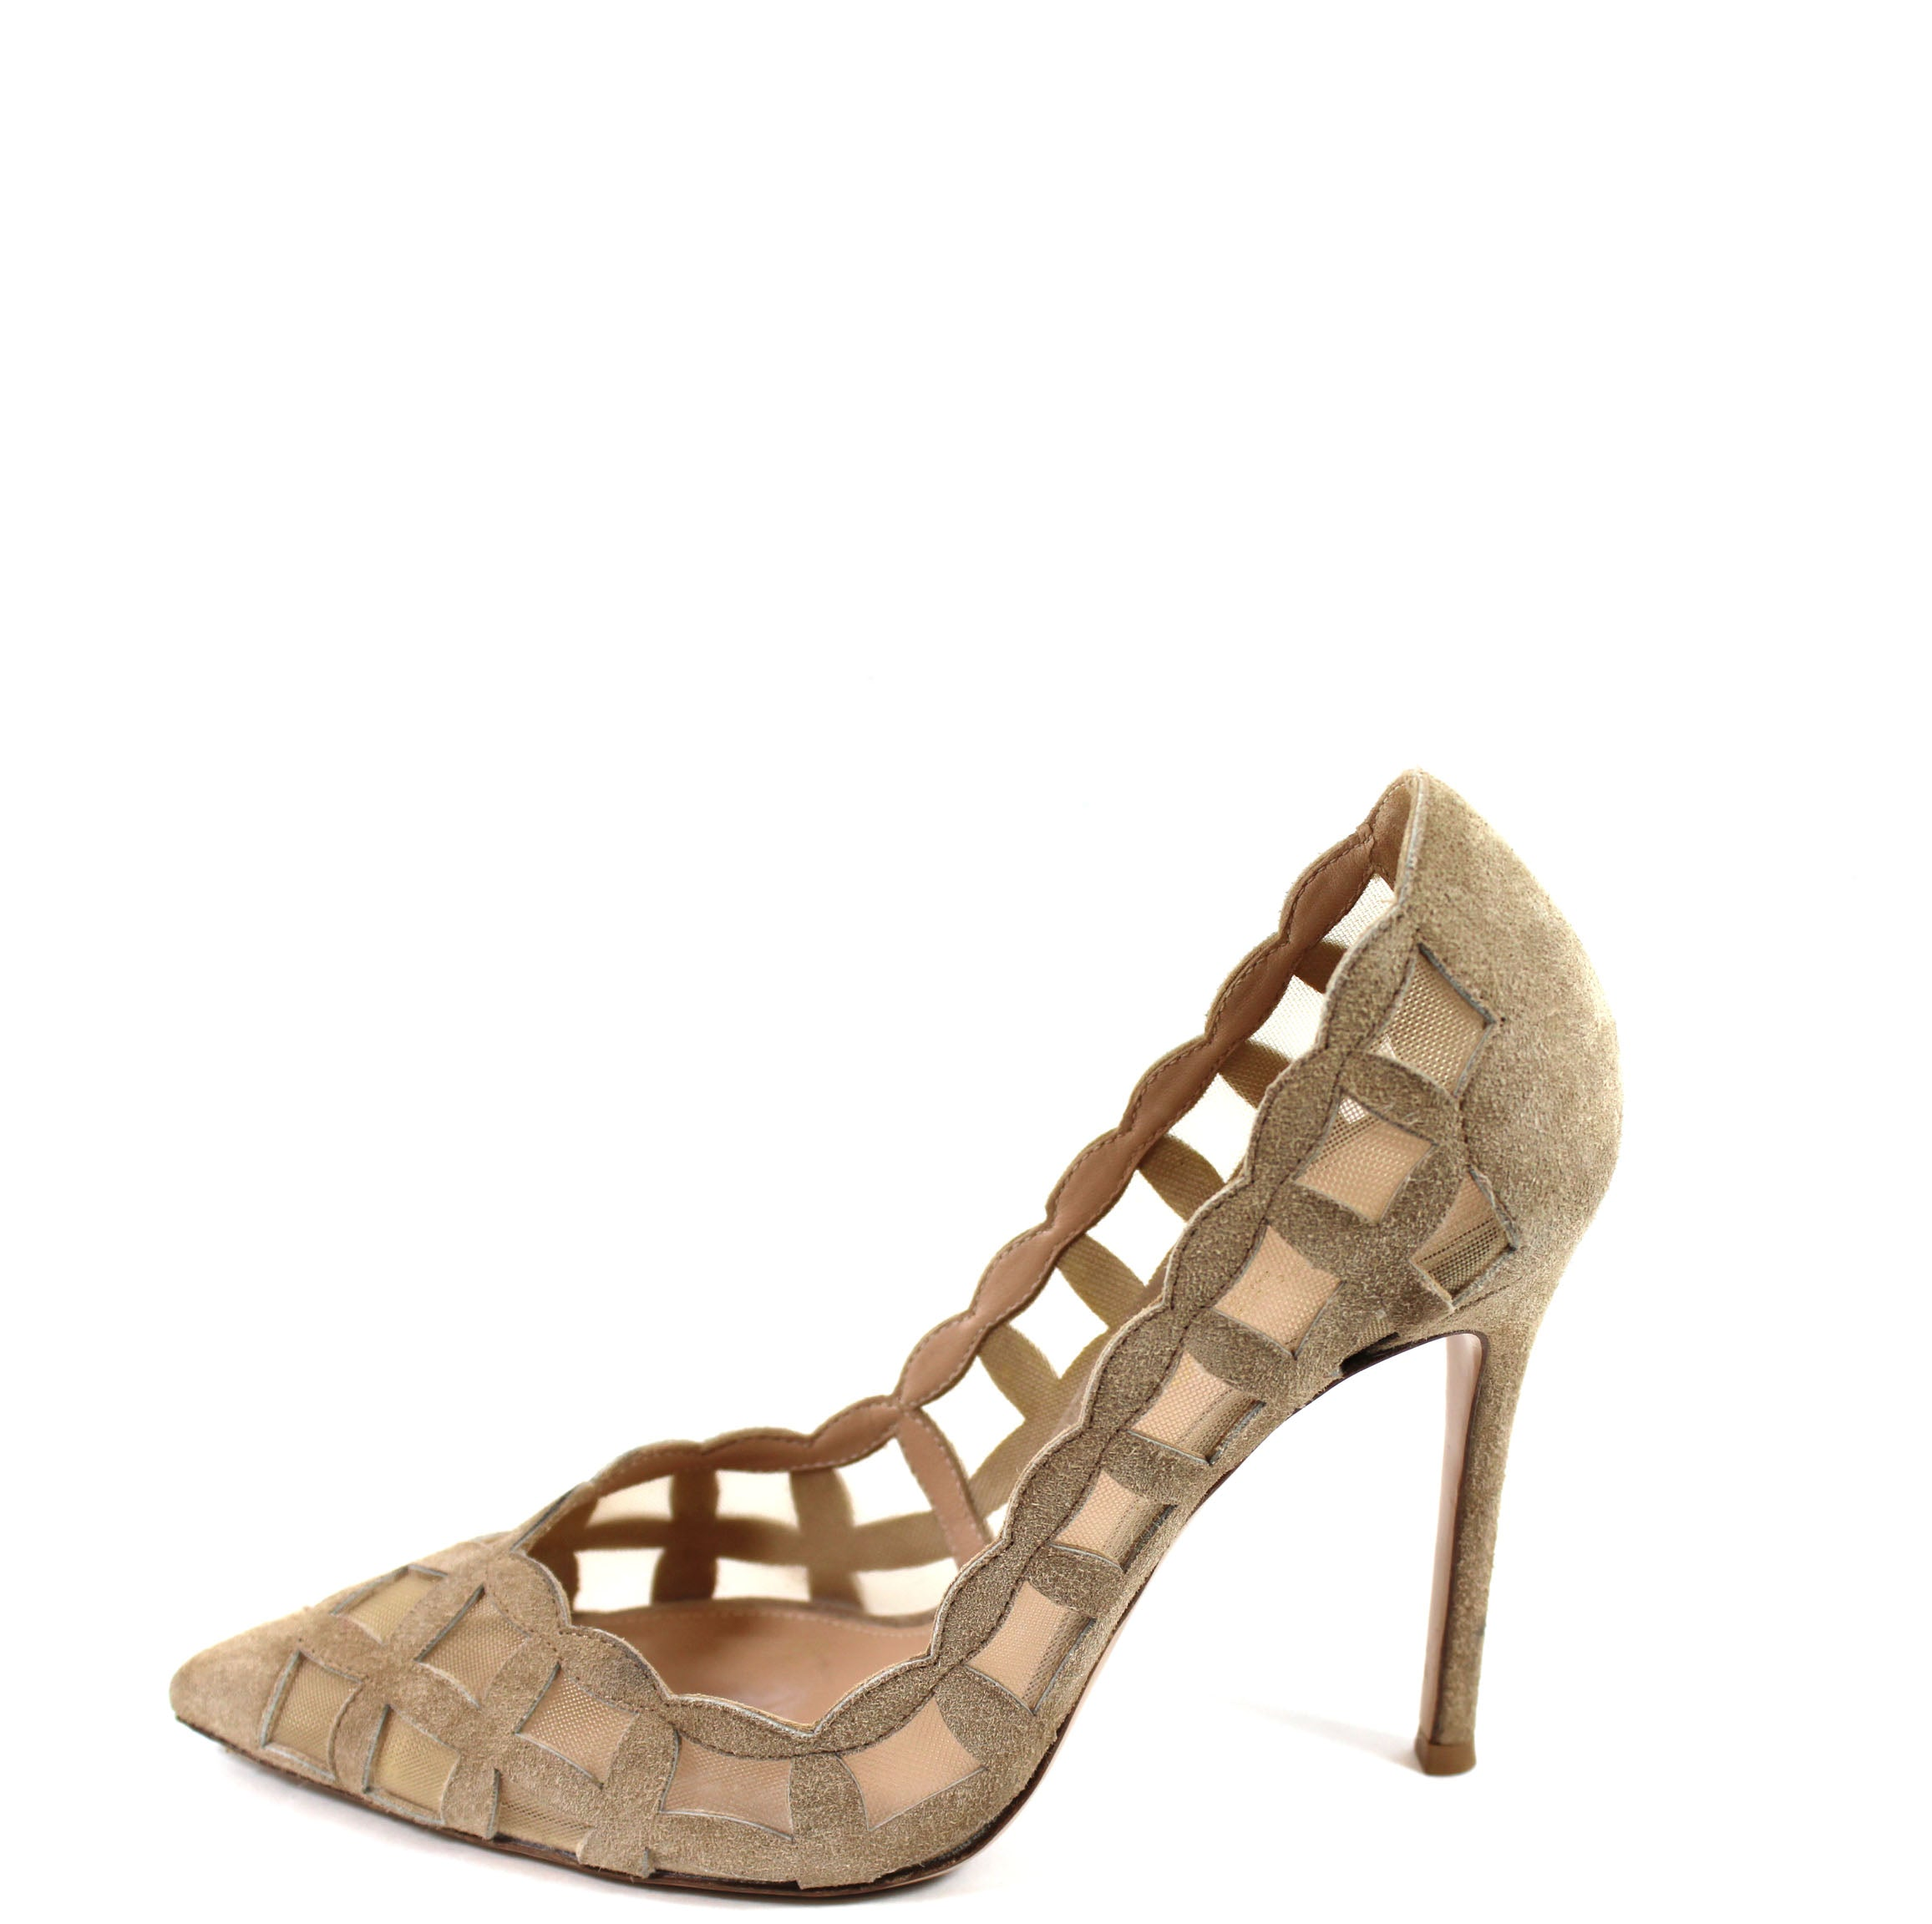 Gianvito Rossi Beige Suede Cut-out Pumps (Size 37)